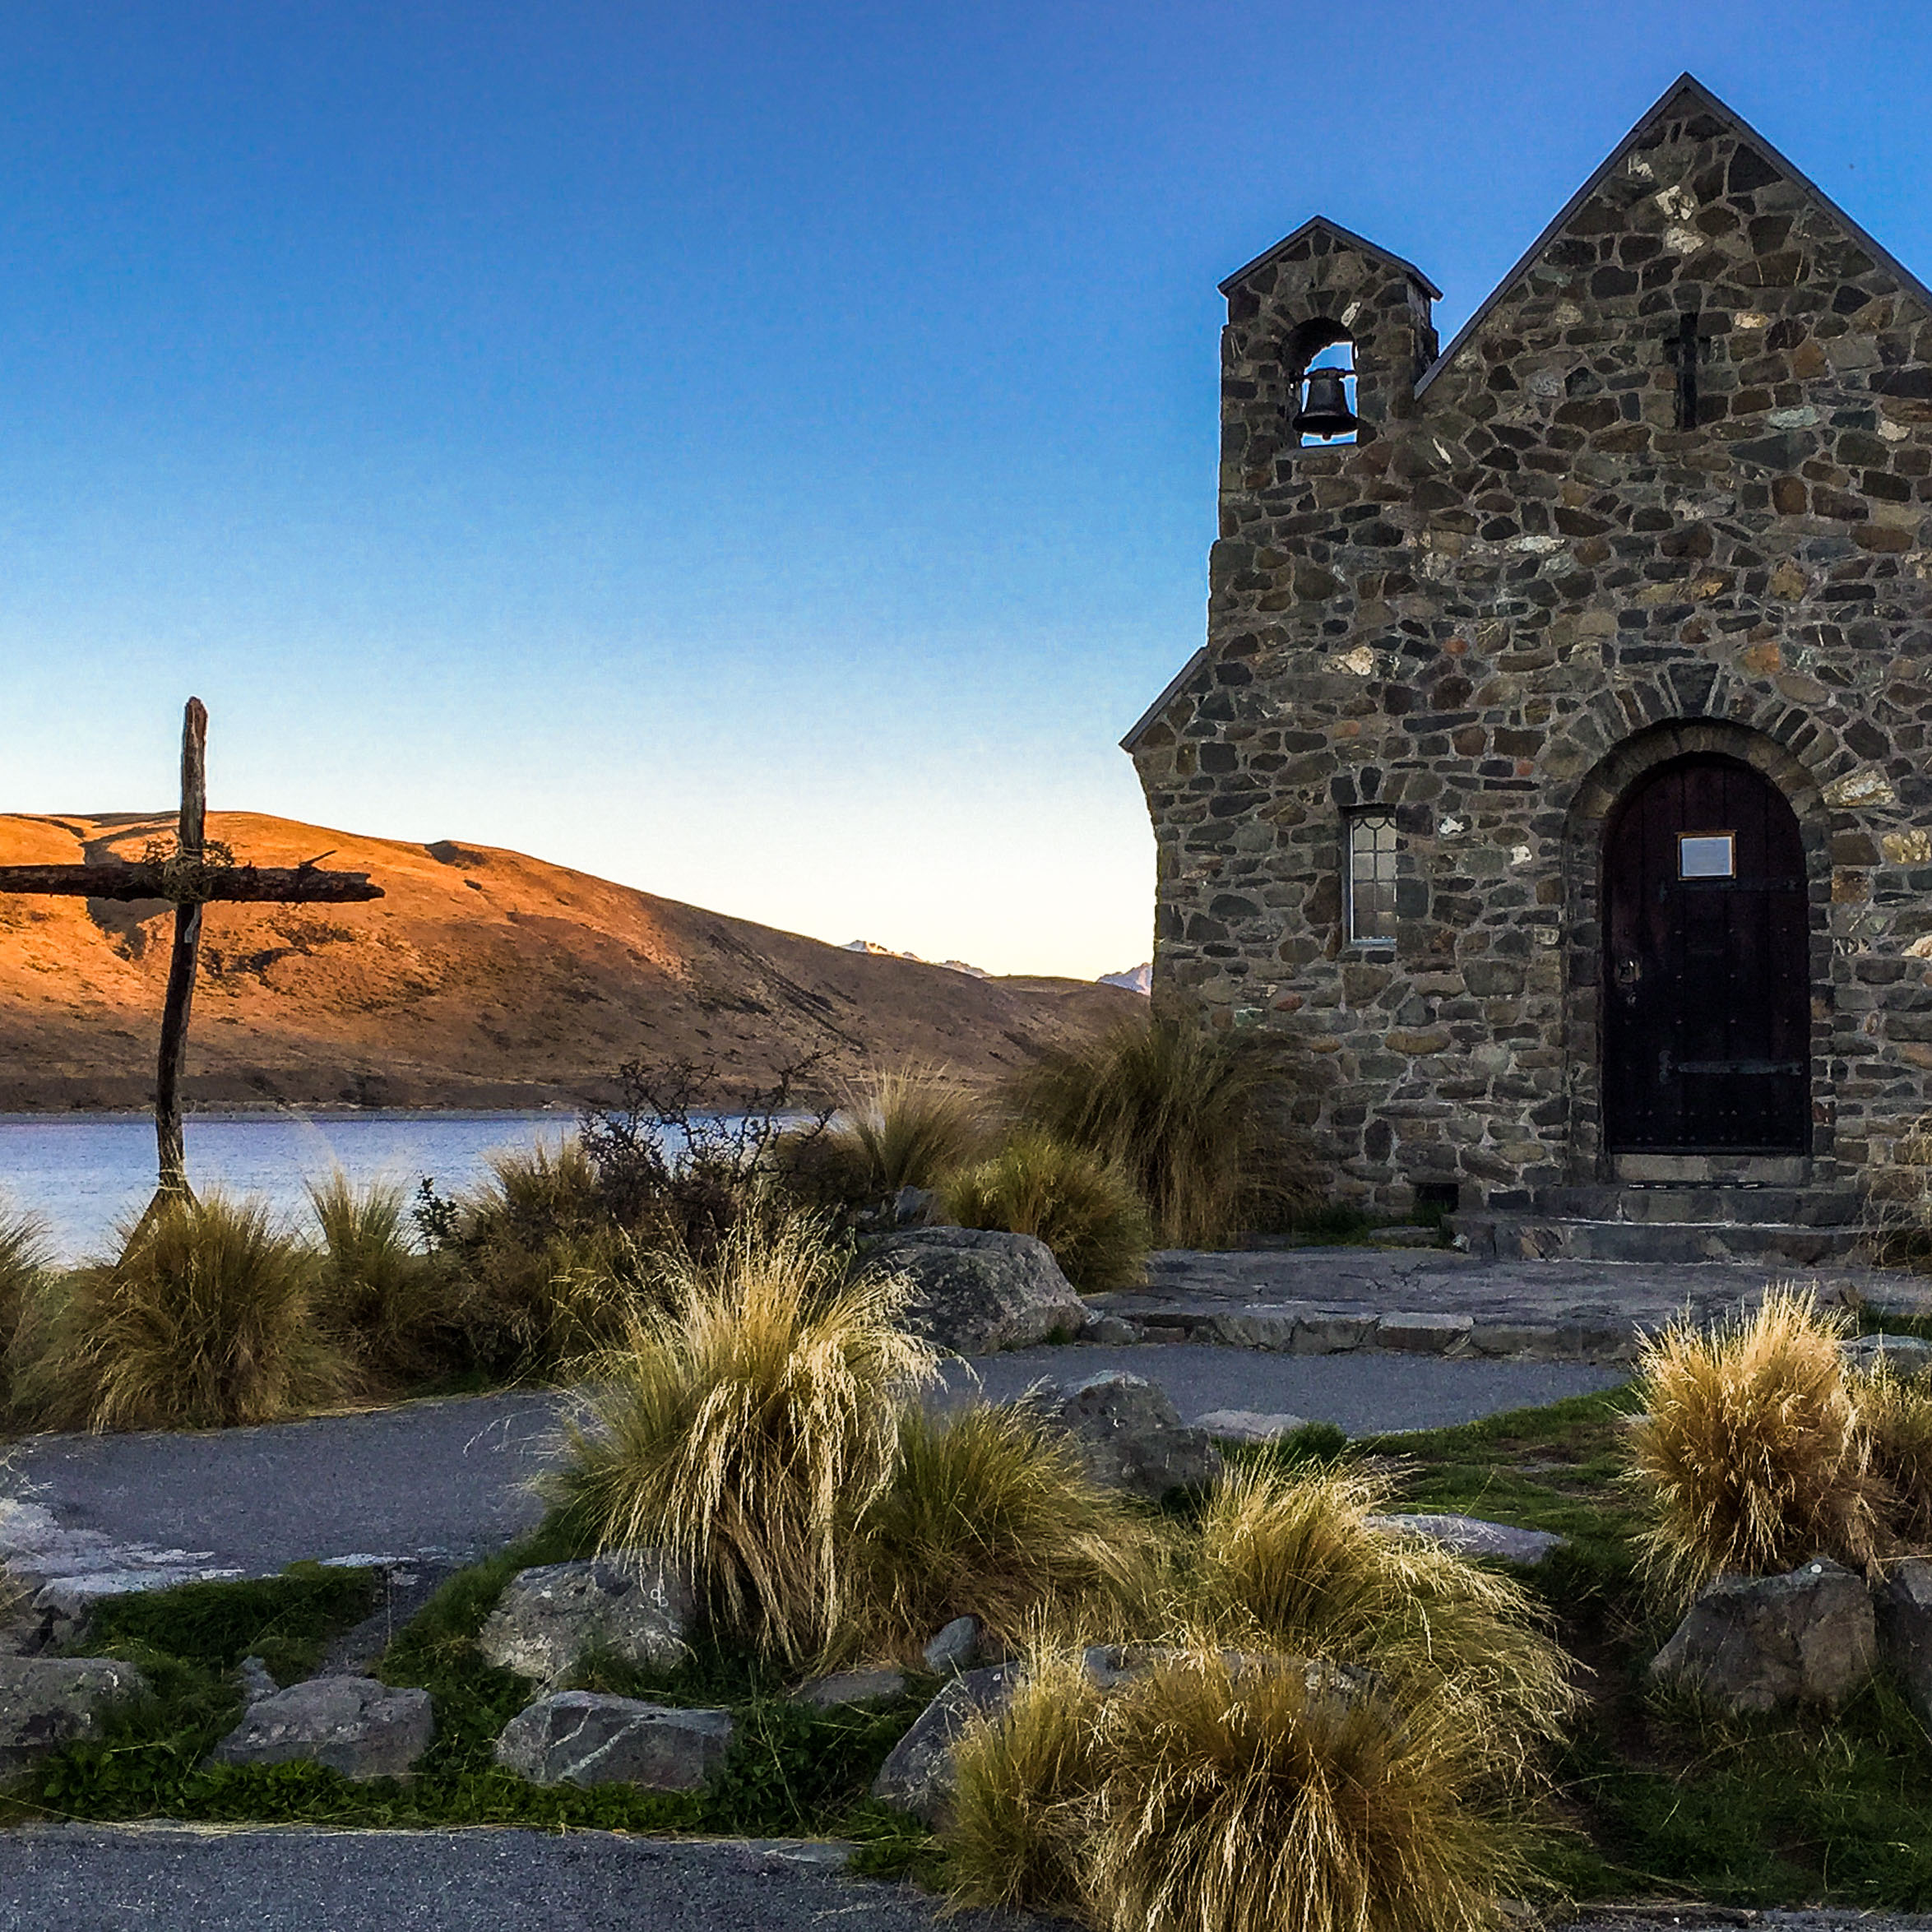 church_of_the_good_shepherd_lake_tekapo_new_zelaland.jpg